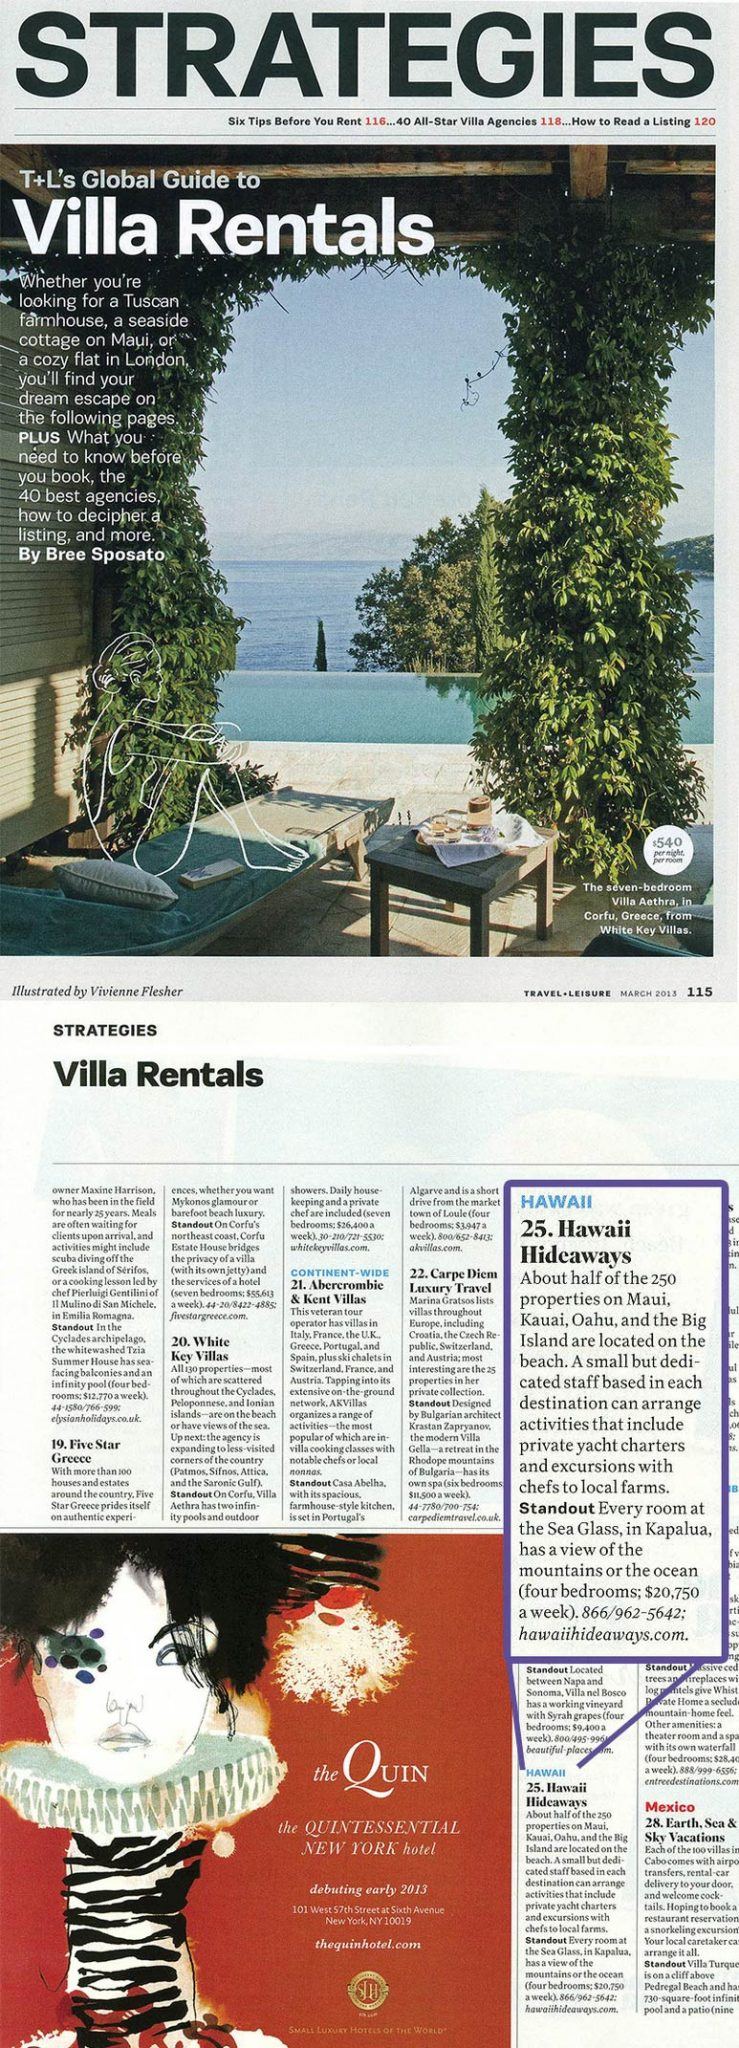 2013-03-travel-leisure-guide-to-villa-rentals-article